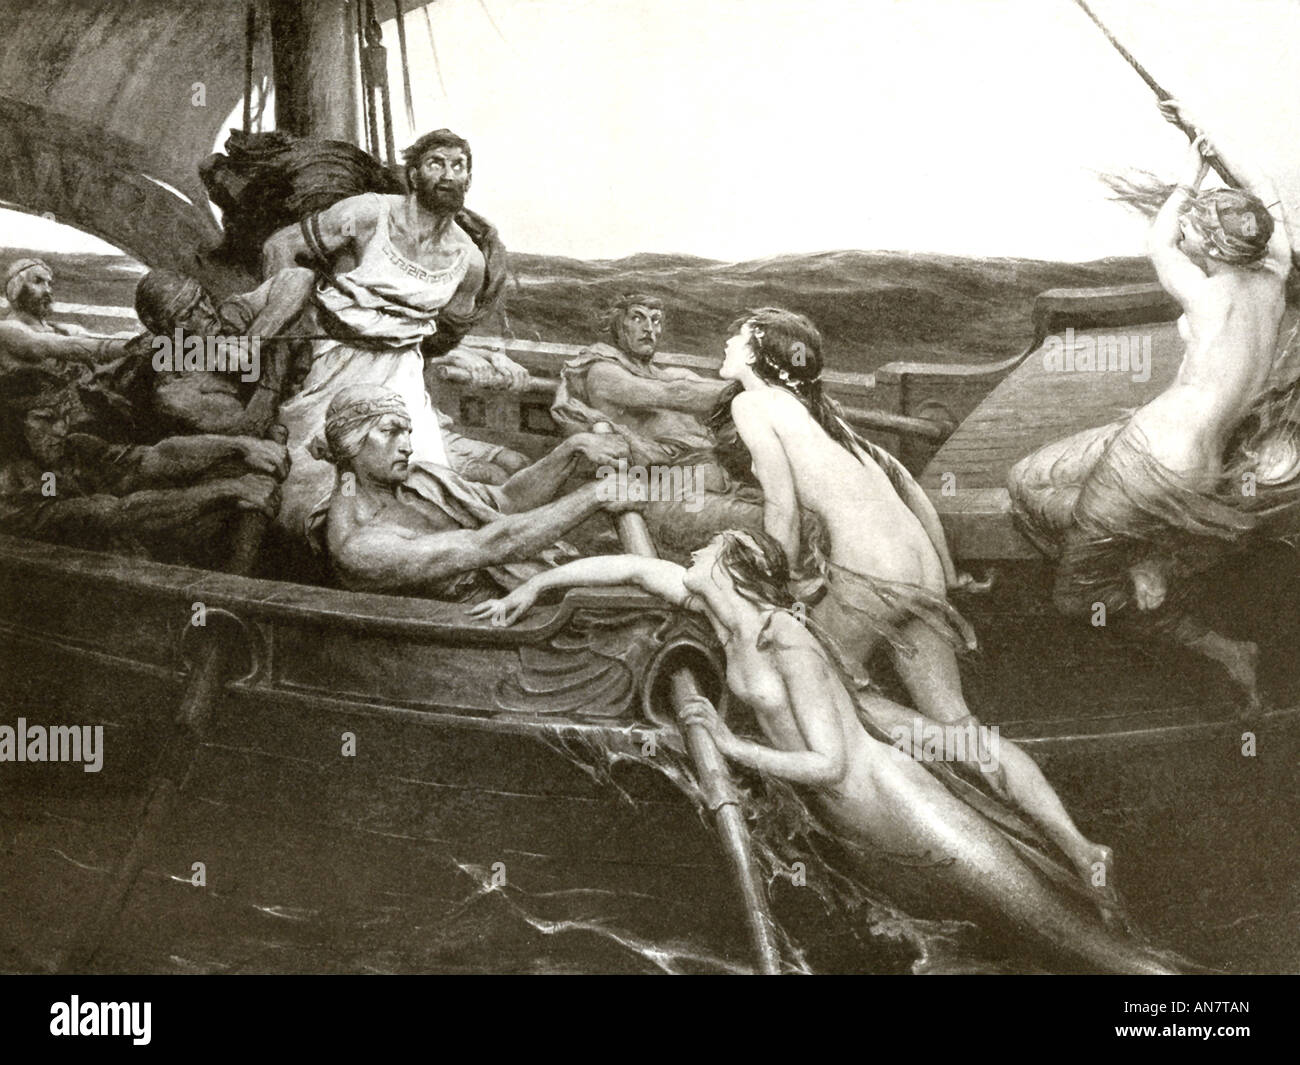 The Sirens attempt to lure the Greek hero Odysseus, bound to the mast of his ship, to their island. - Stock Image